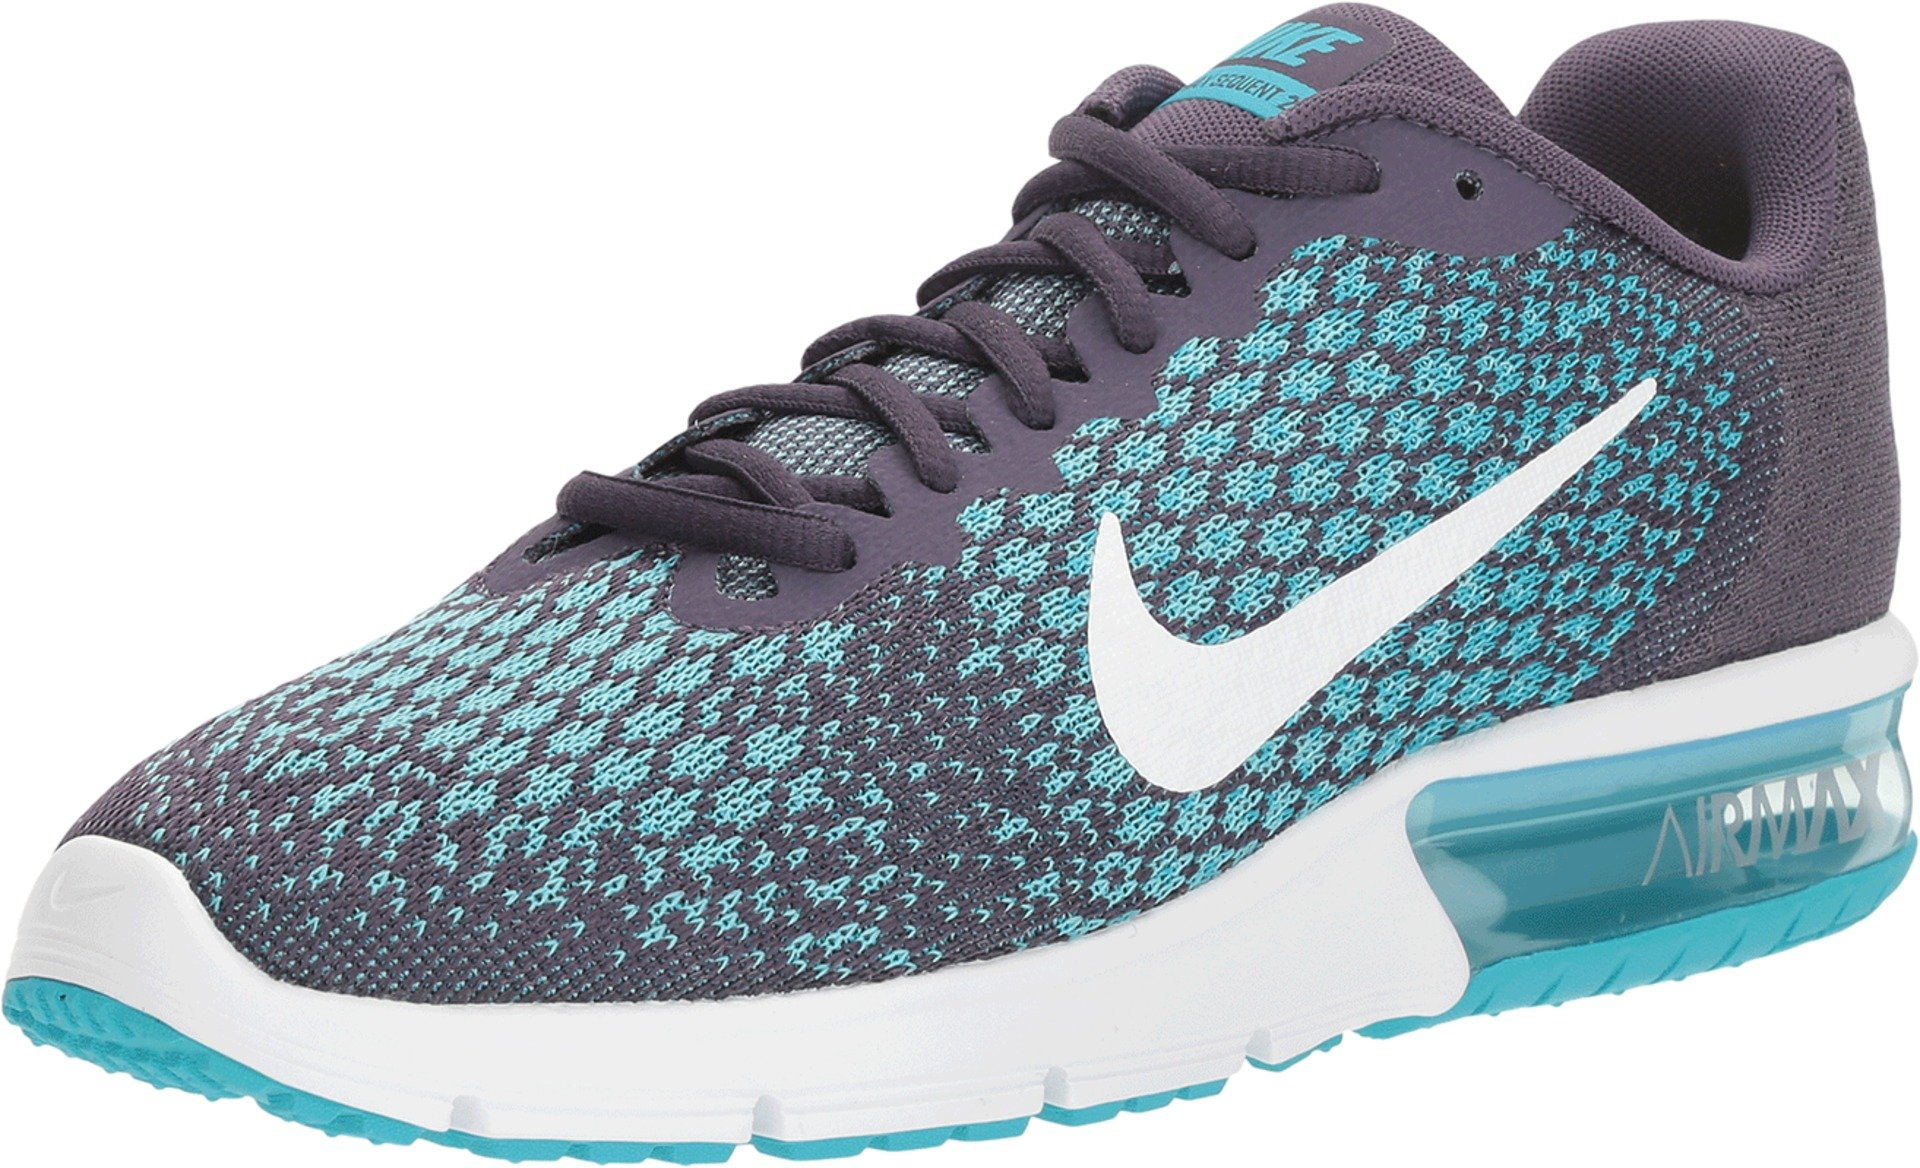 NIKE Women's WMNS Air Max Sequent 2, Dark RaisinWhite, 5.5 M US